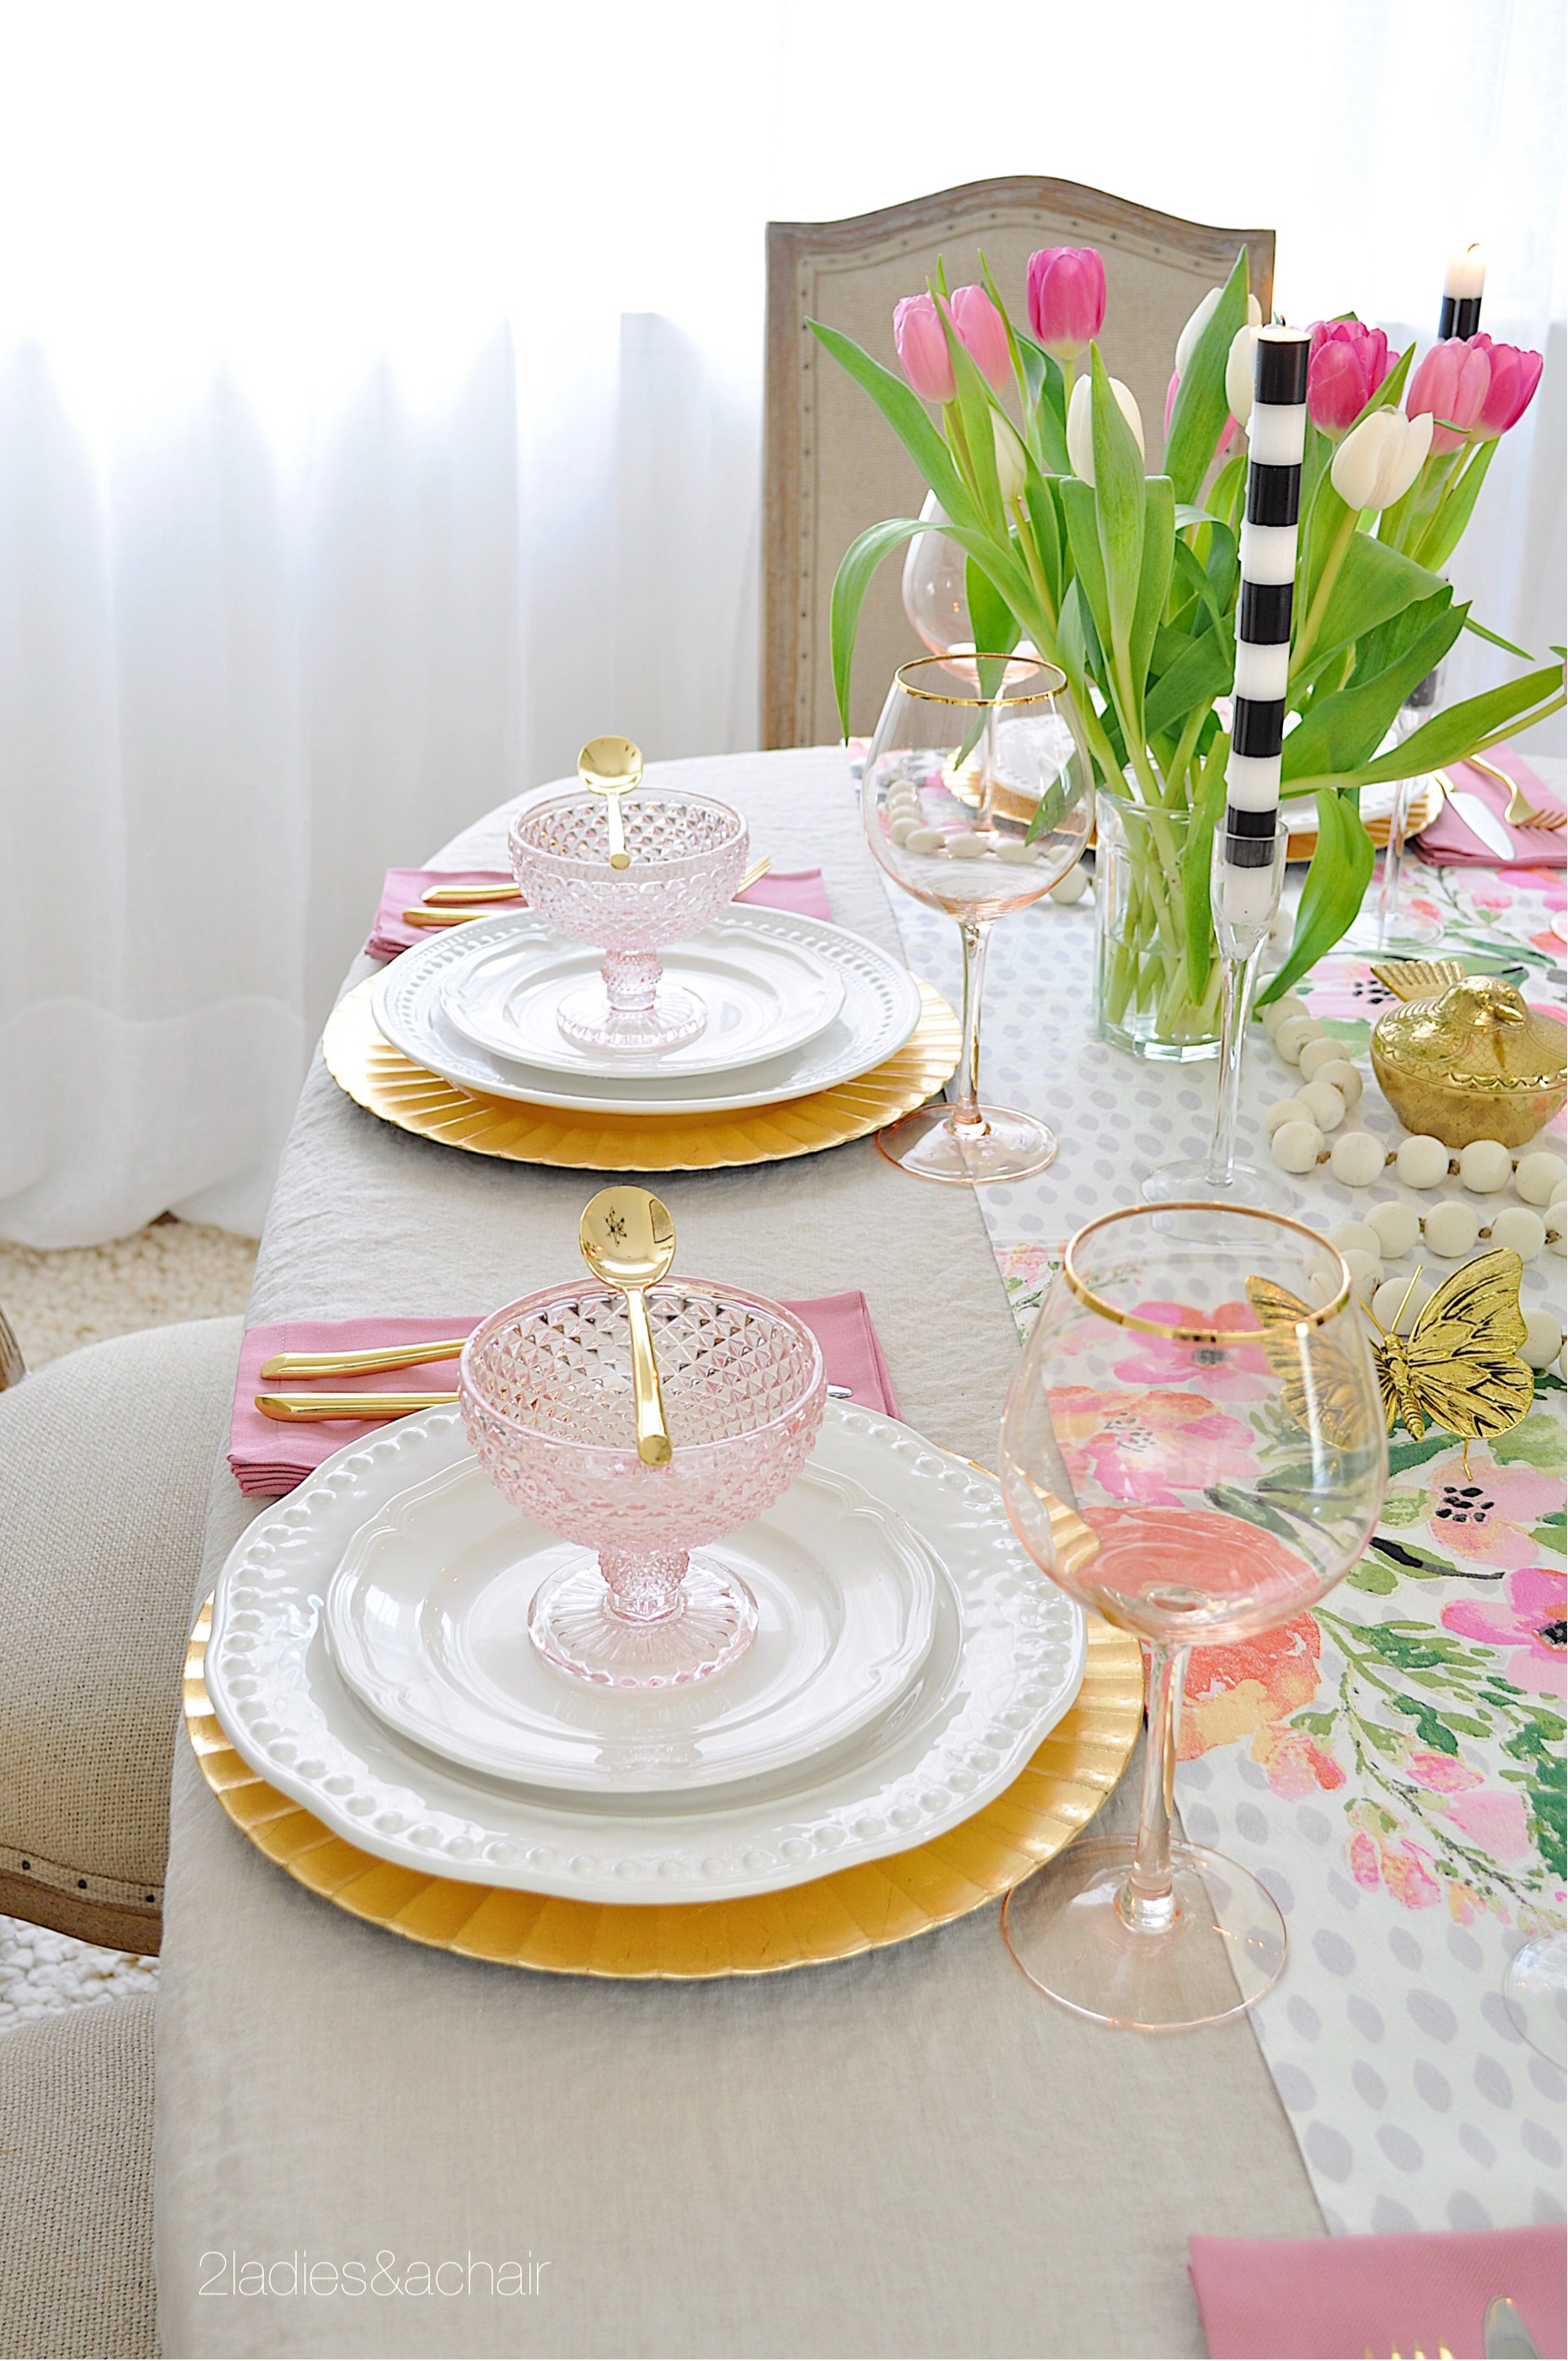 spring tablescape decor IMG_1937.JPG